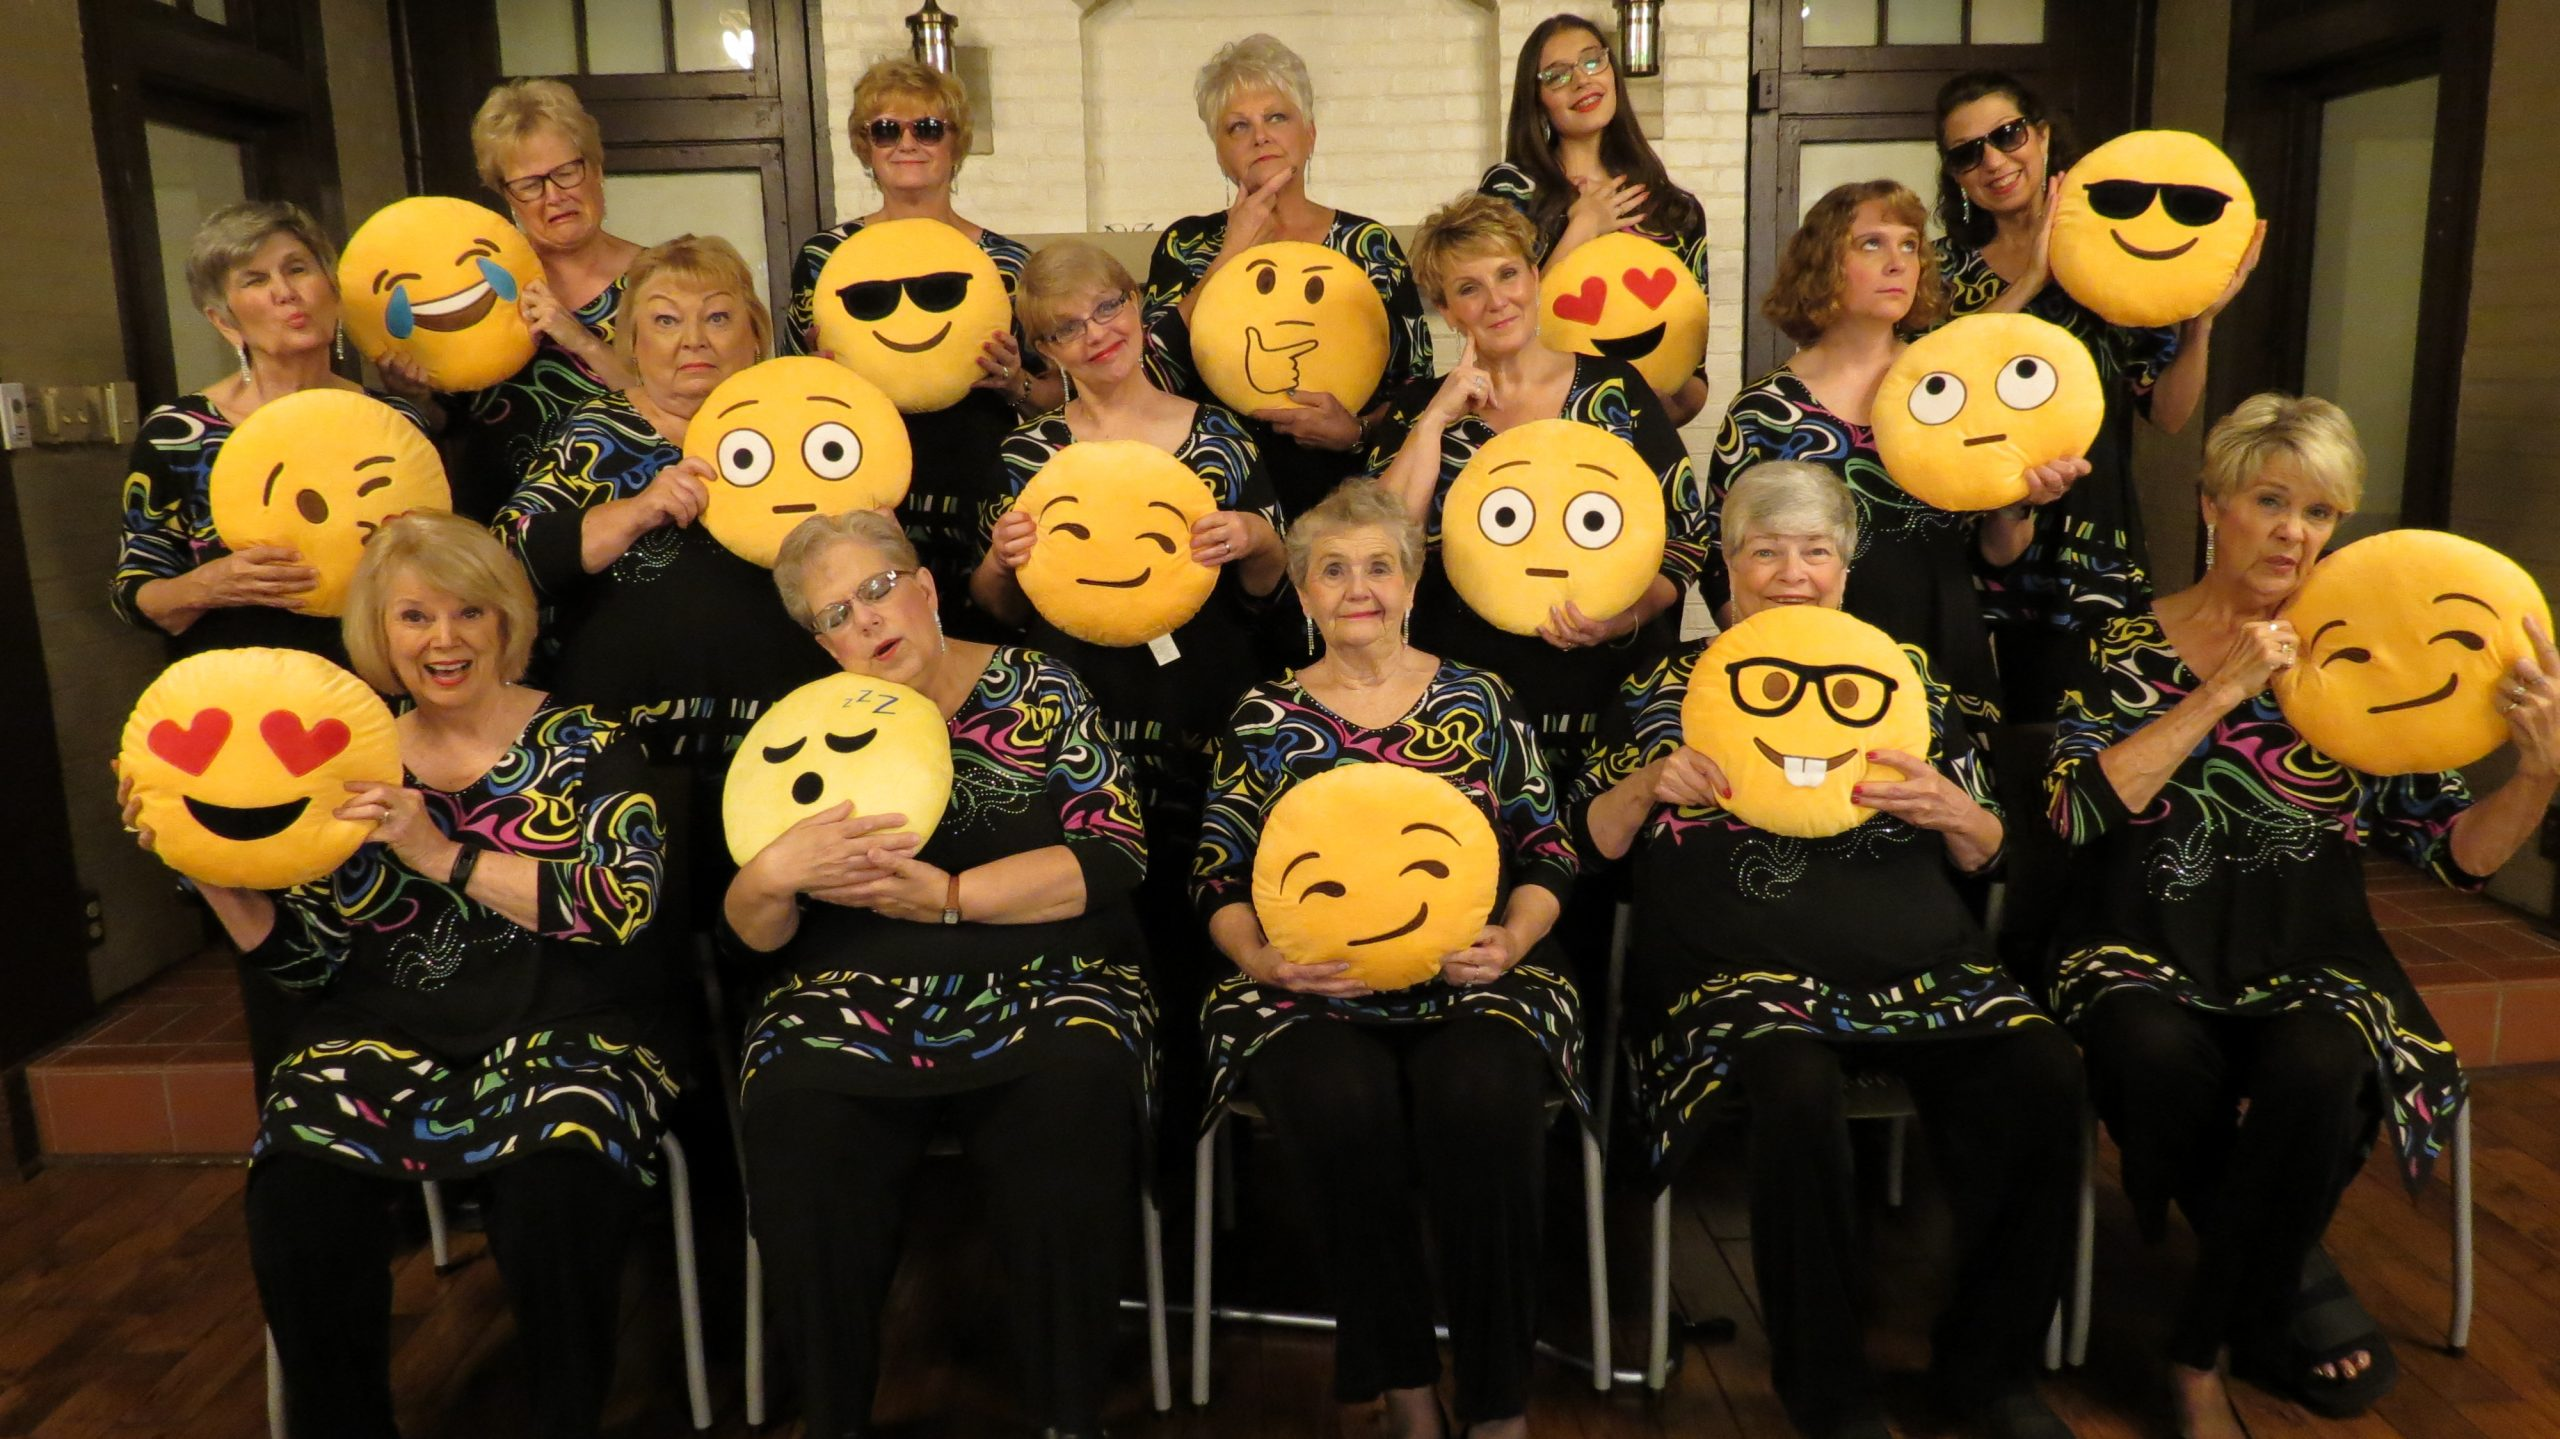 The Good, The Bad, and The Emoji! - Danville Sweet Adelines